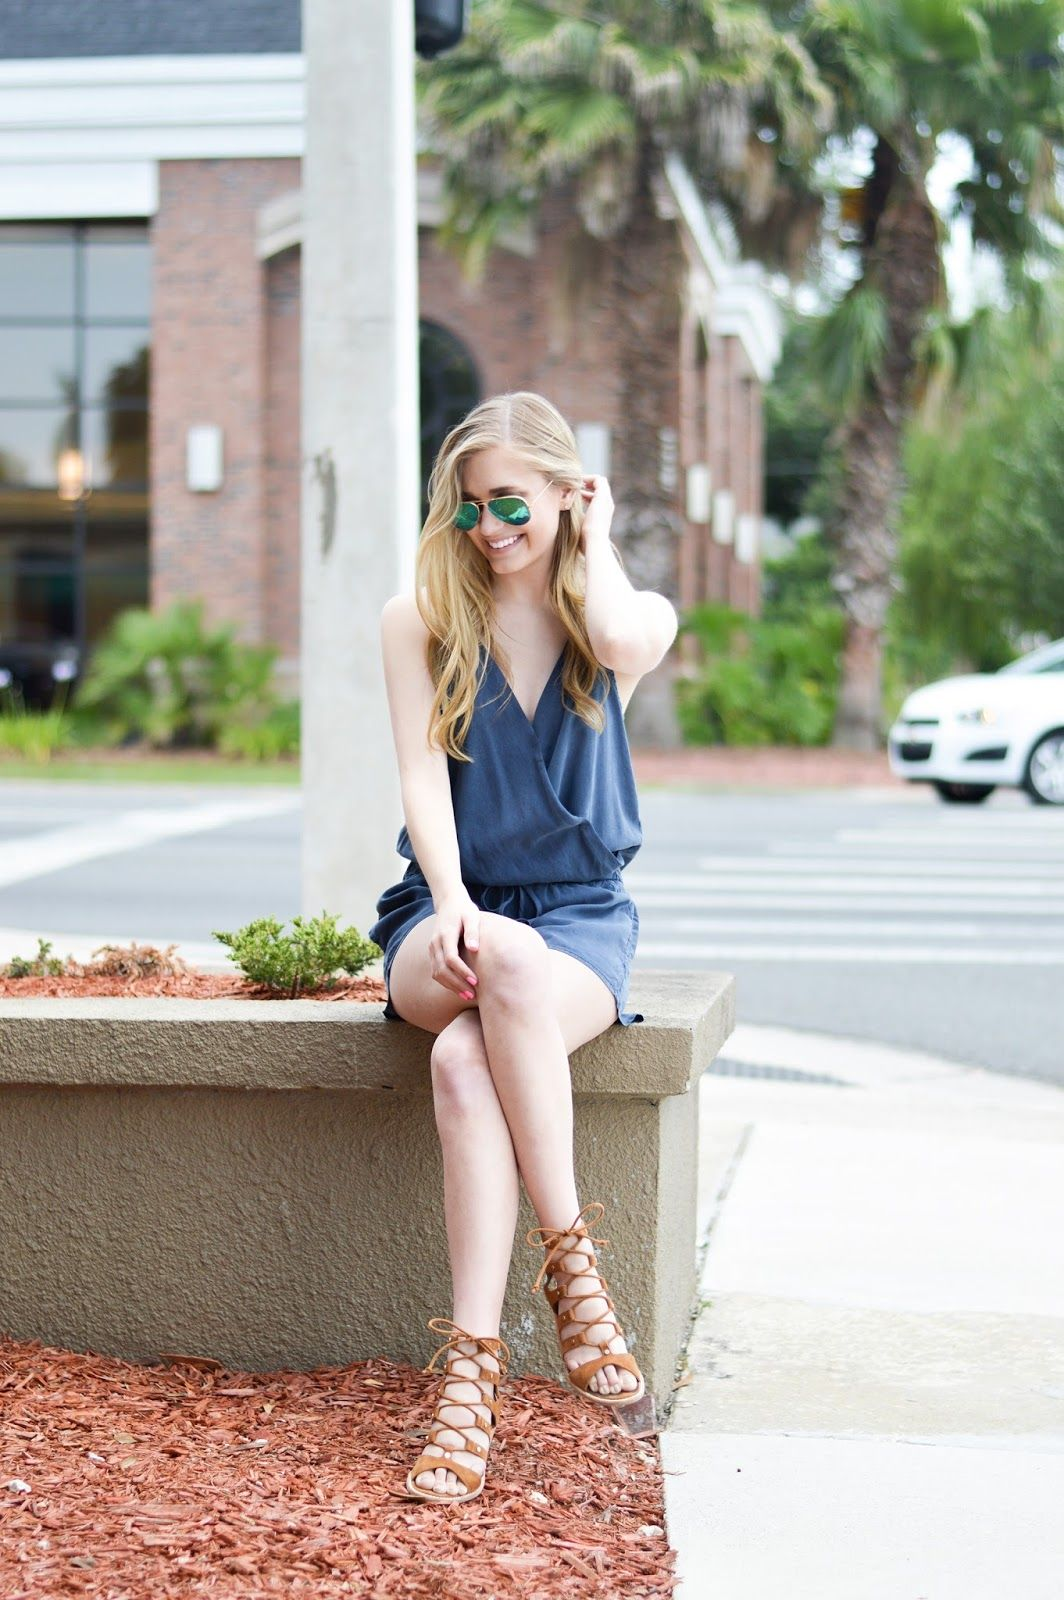 Summer is the Time for Rompers!